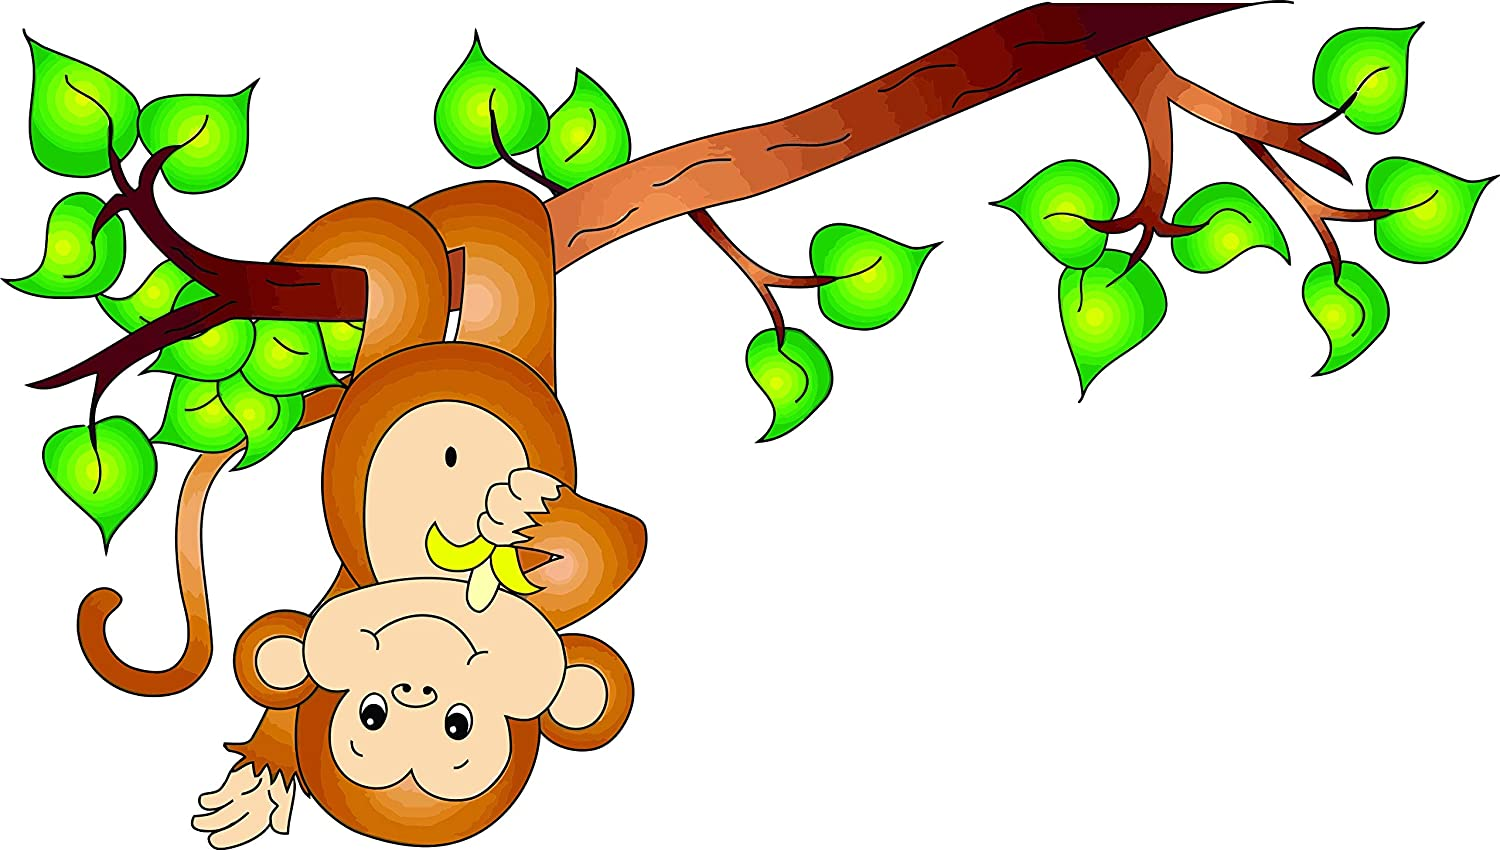 Amazon Com Monkey Monkeys Hanging Upside Down On Tree Branch Cartoon Cartoons Curious George Cartoon Wall Decals For Bedroom Or Bathroom Animal Animals Design Kids Kid Vinyl Art Decal Walls Rooms Size 15x20